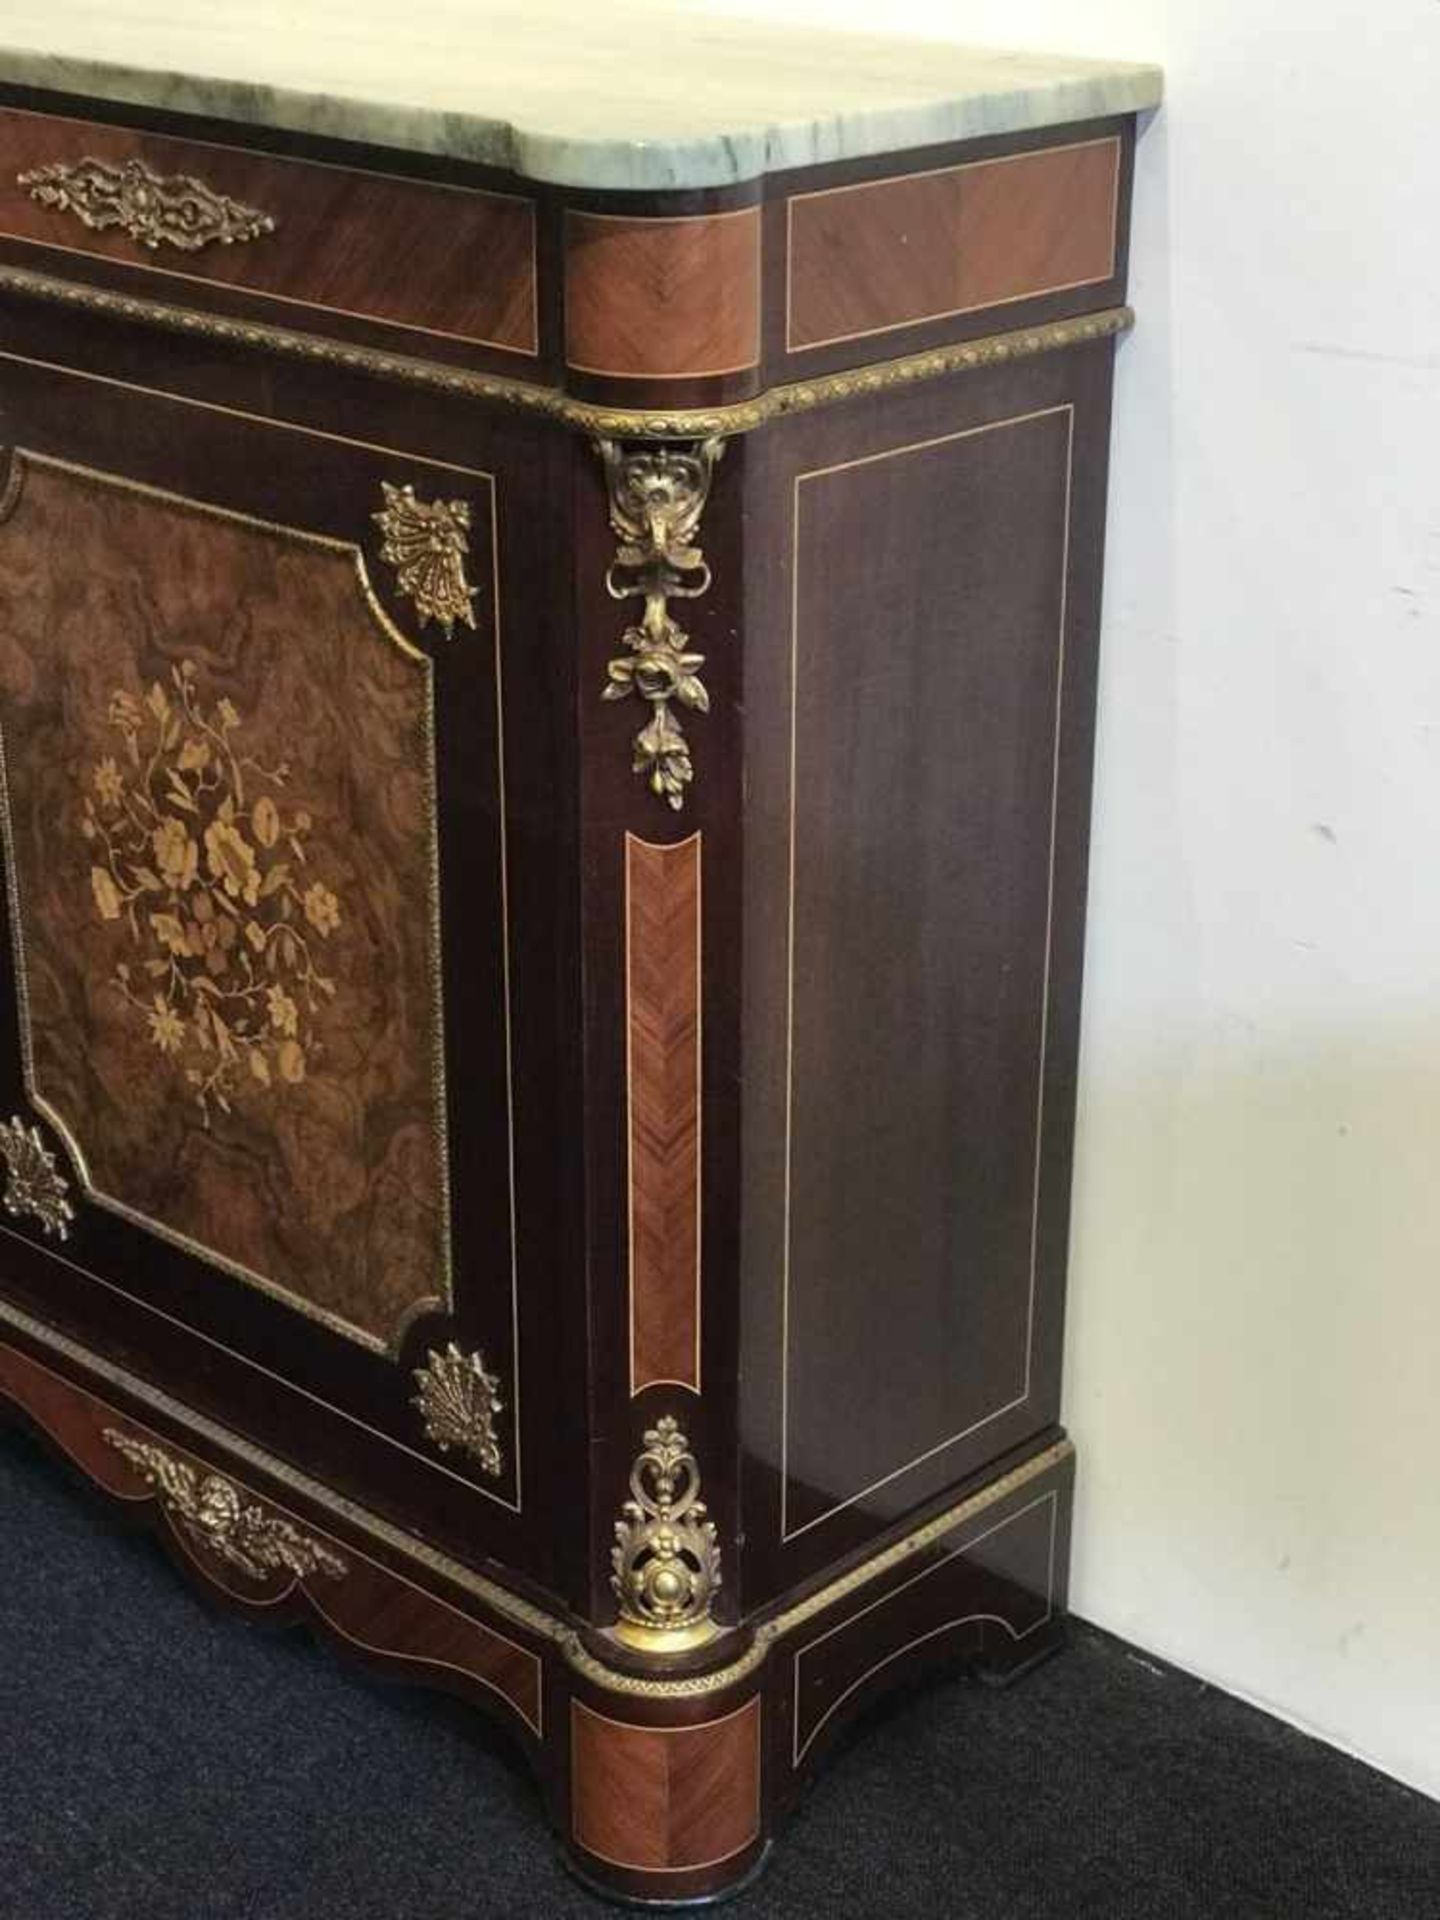 Cupboard style Napoleon III marquetry, root wood and marble top H 100 B 82 D 40 cm - Bild 2 aus 4